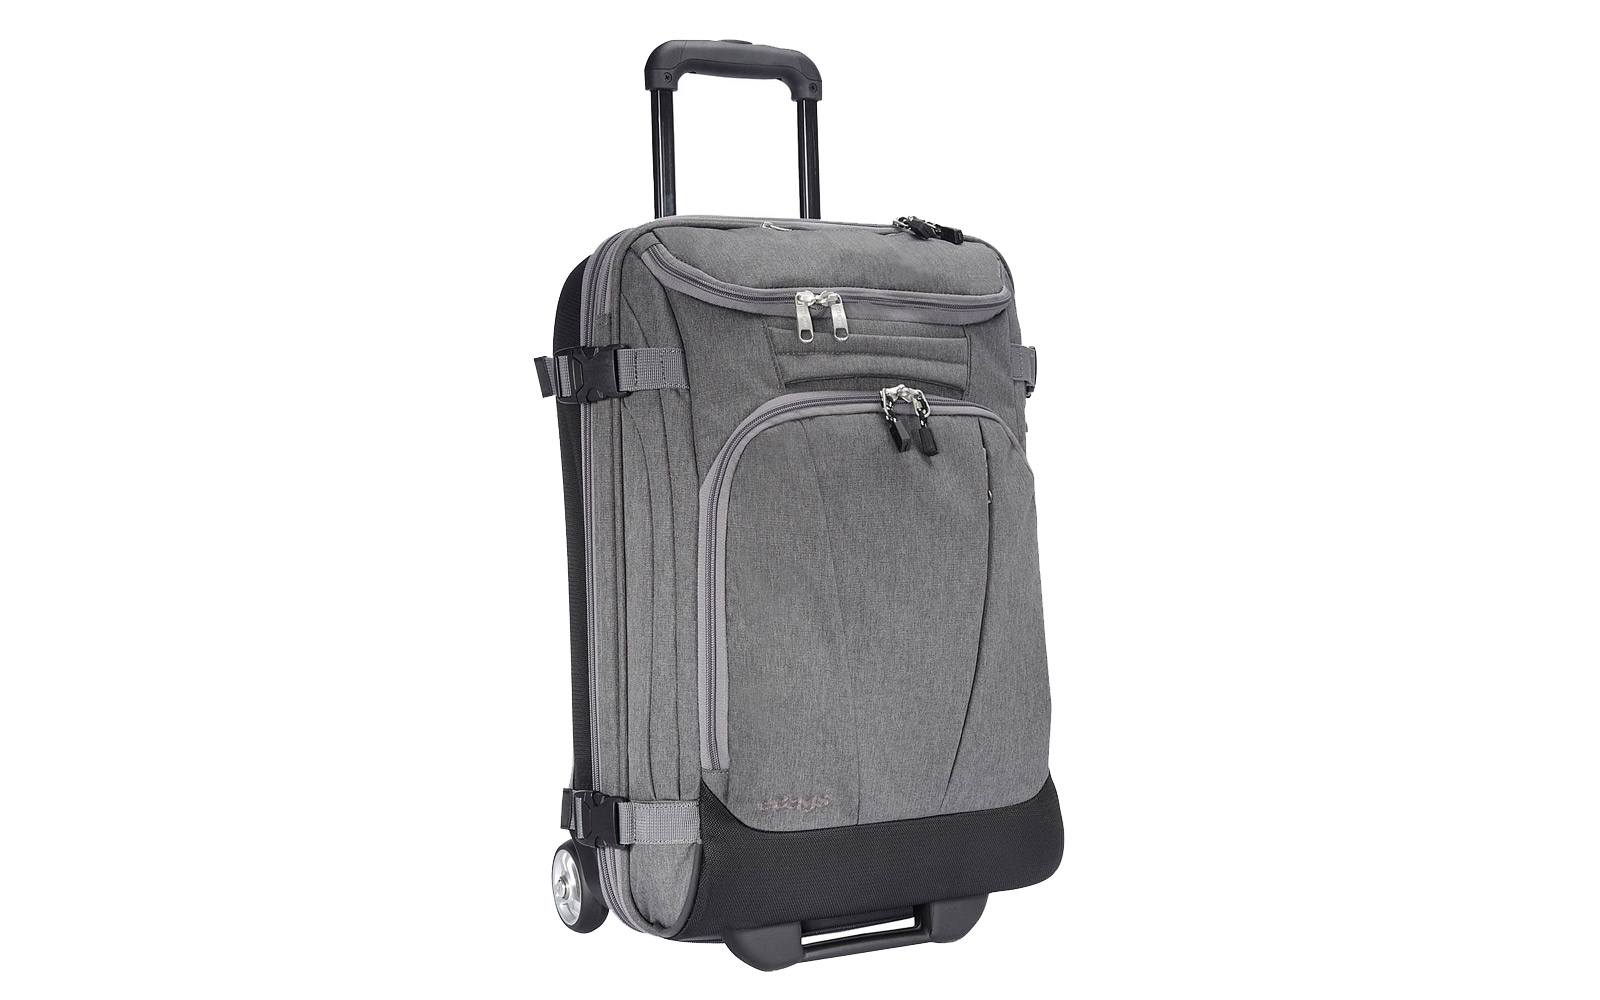 ebags black friday luggage deals 2018